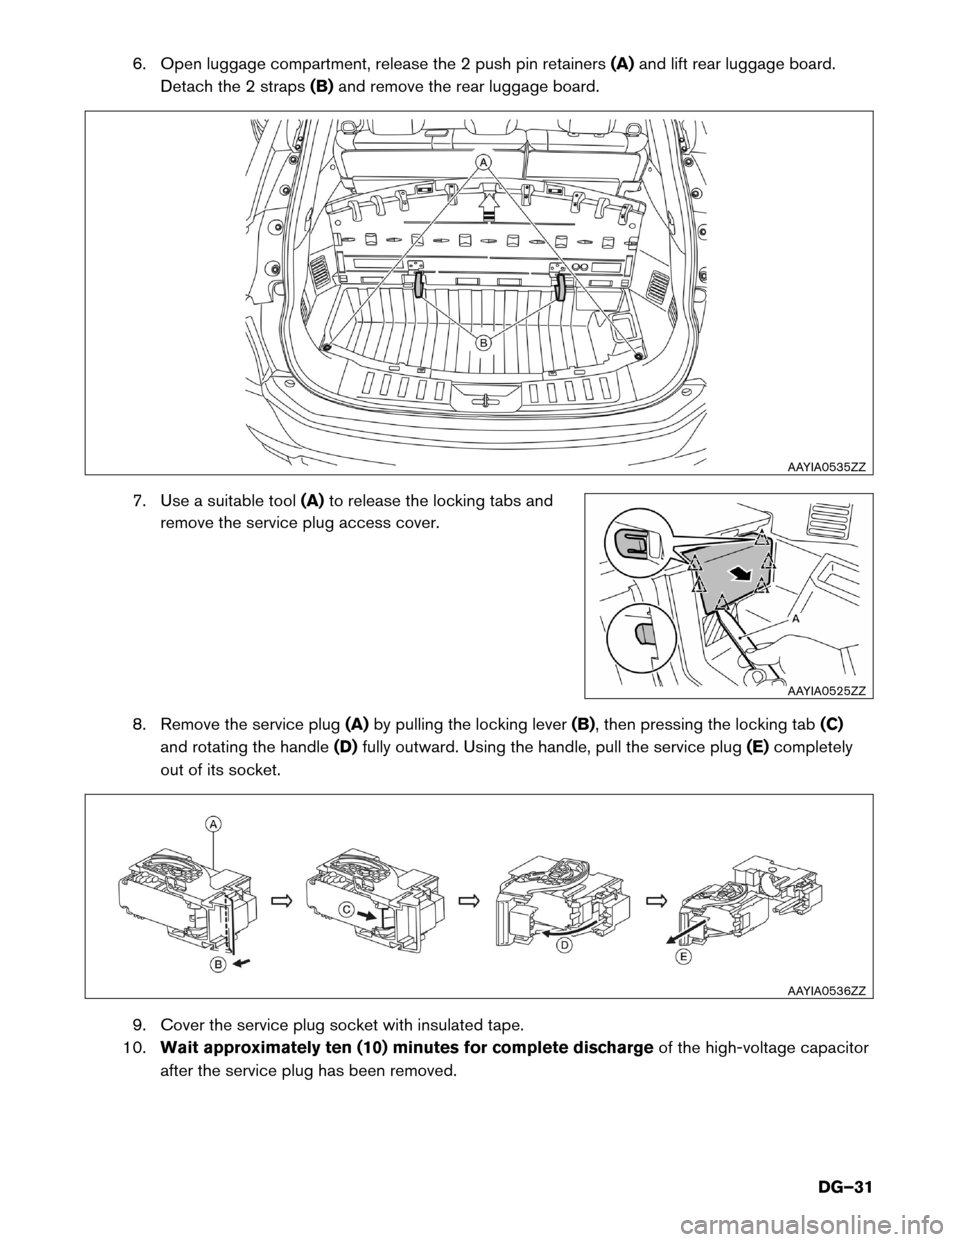 5f977 2014 nissan rogue fuse box location | wiring library 2014 nissan rogue fuse box location  wiring library